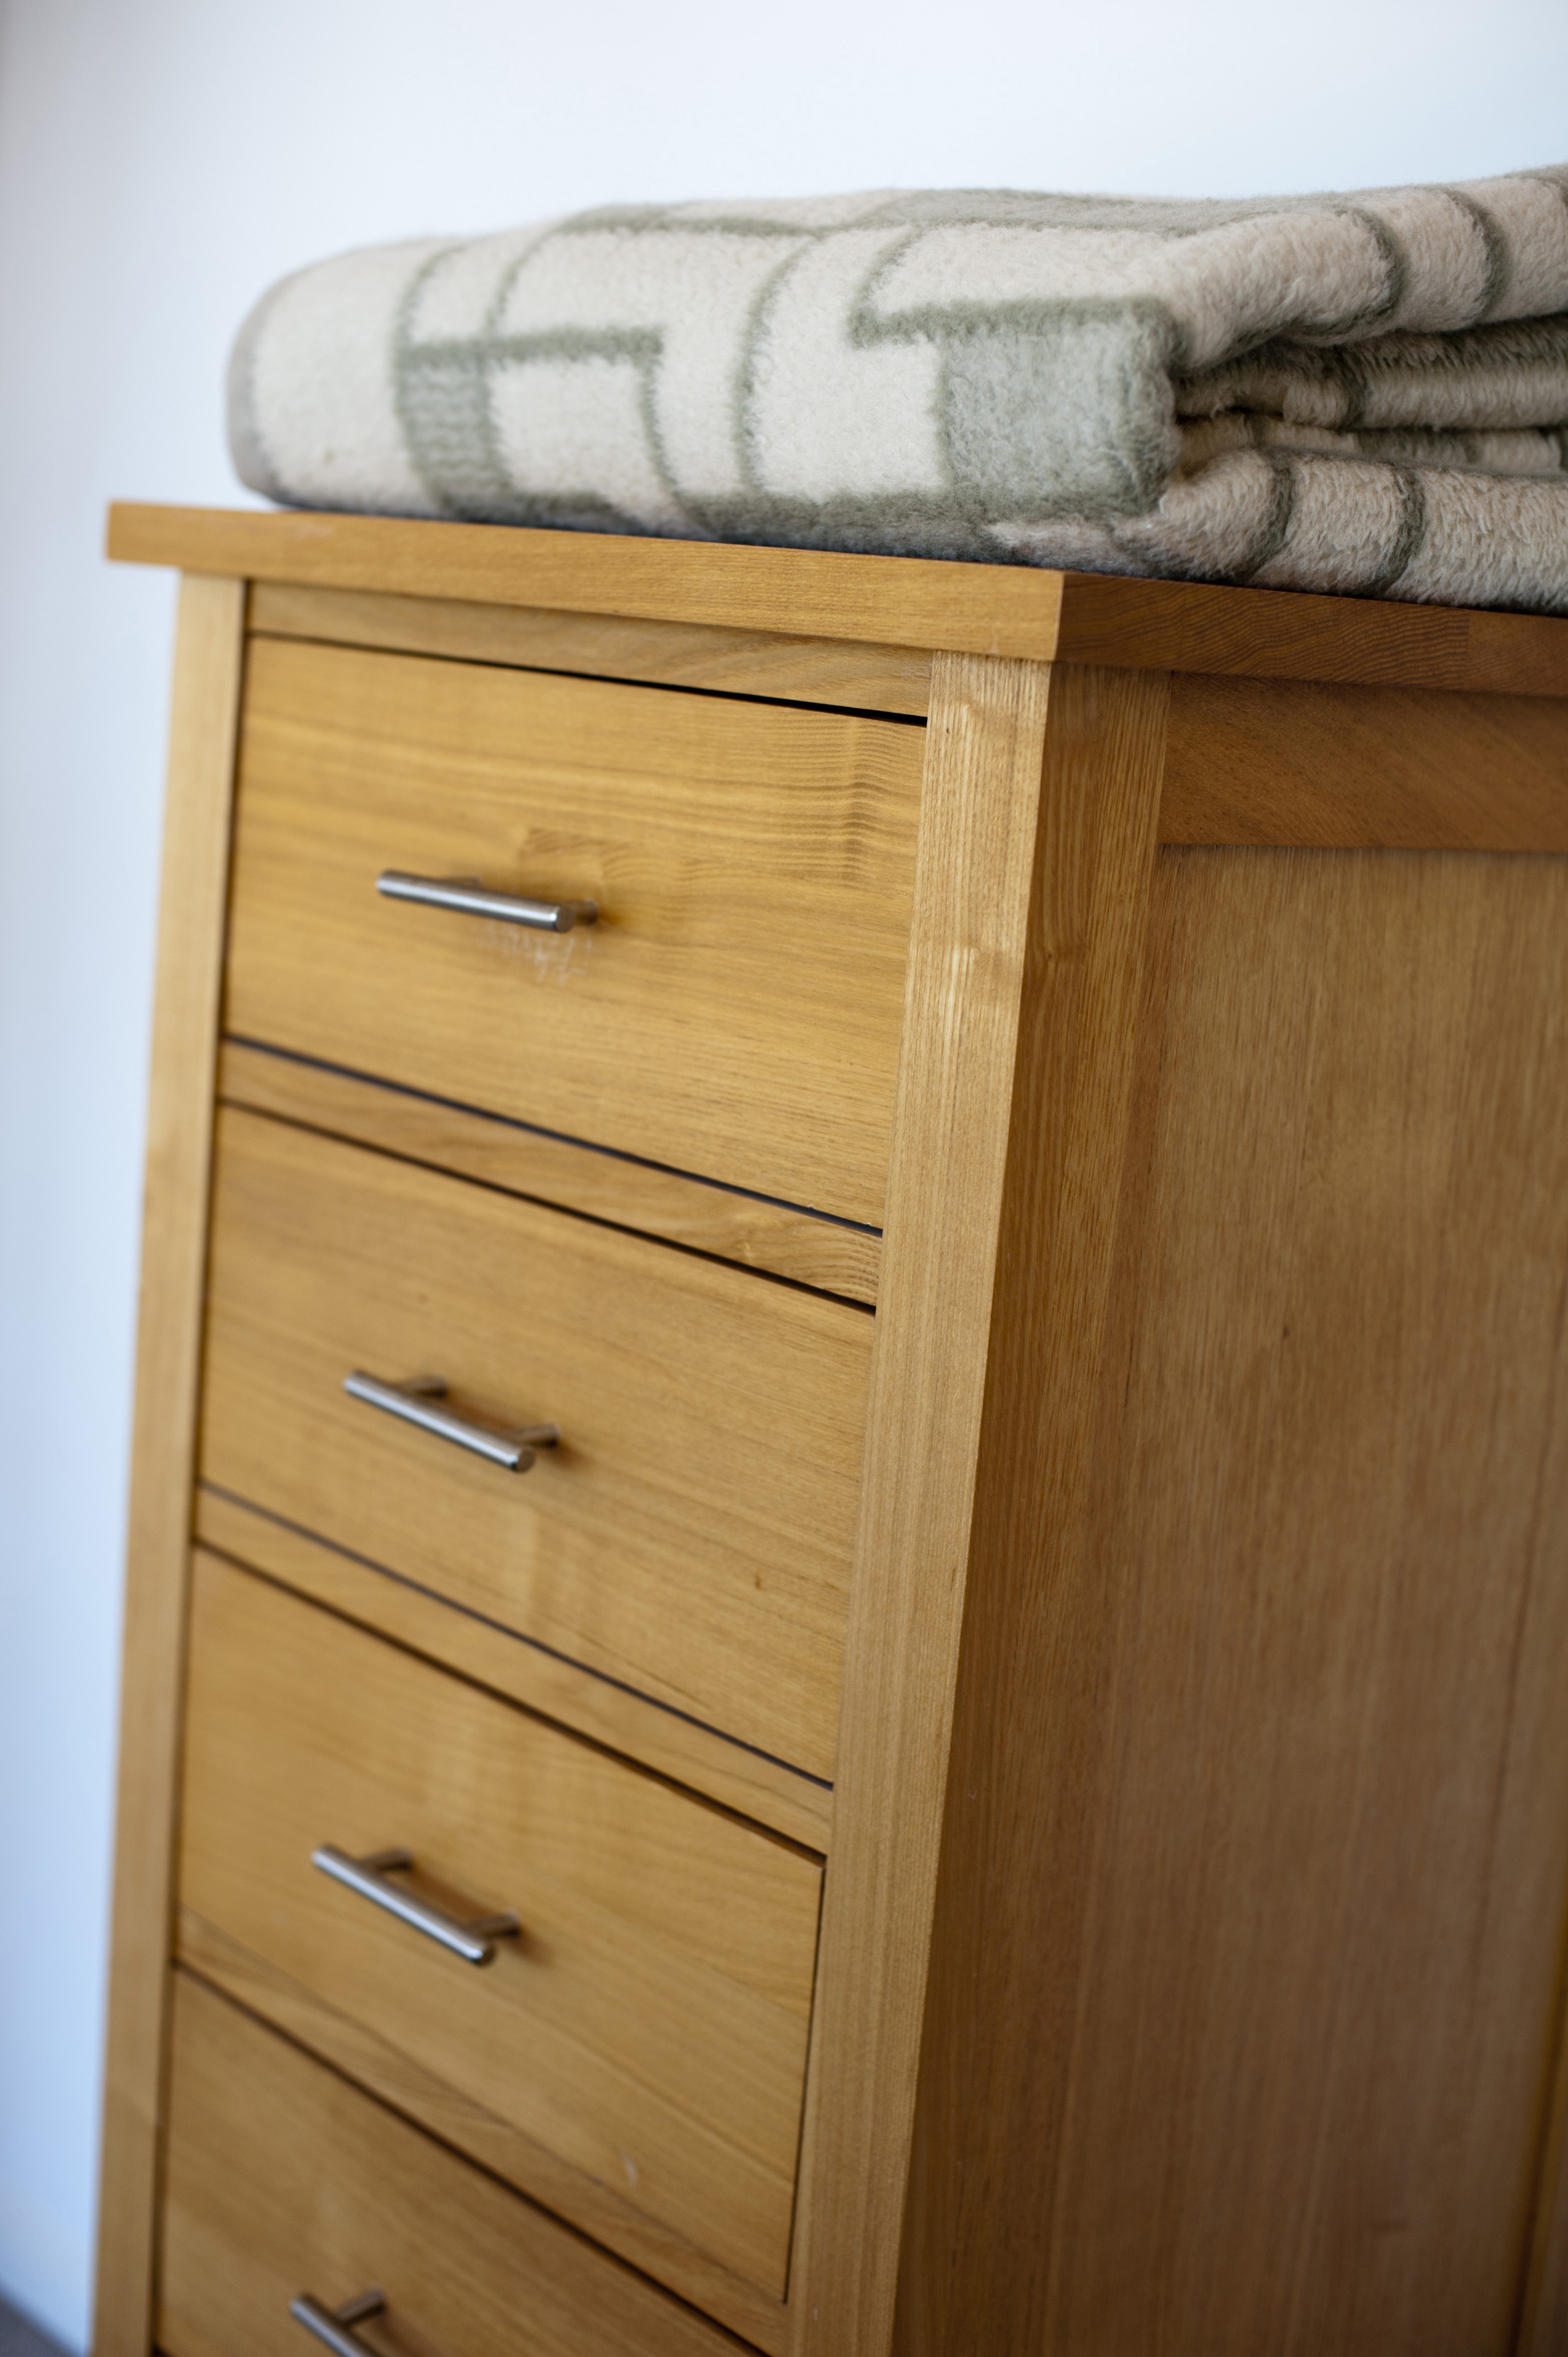 Small natural wood chest of drawers with a folded blanket on top against a white wall